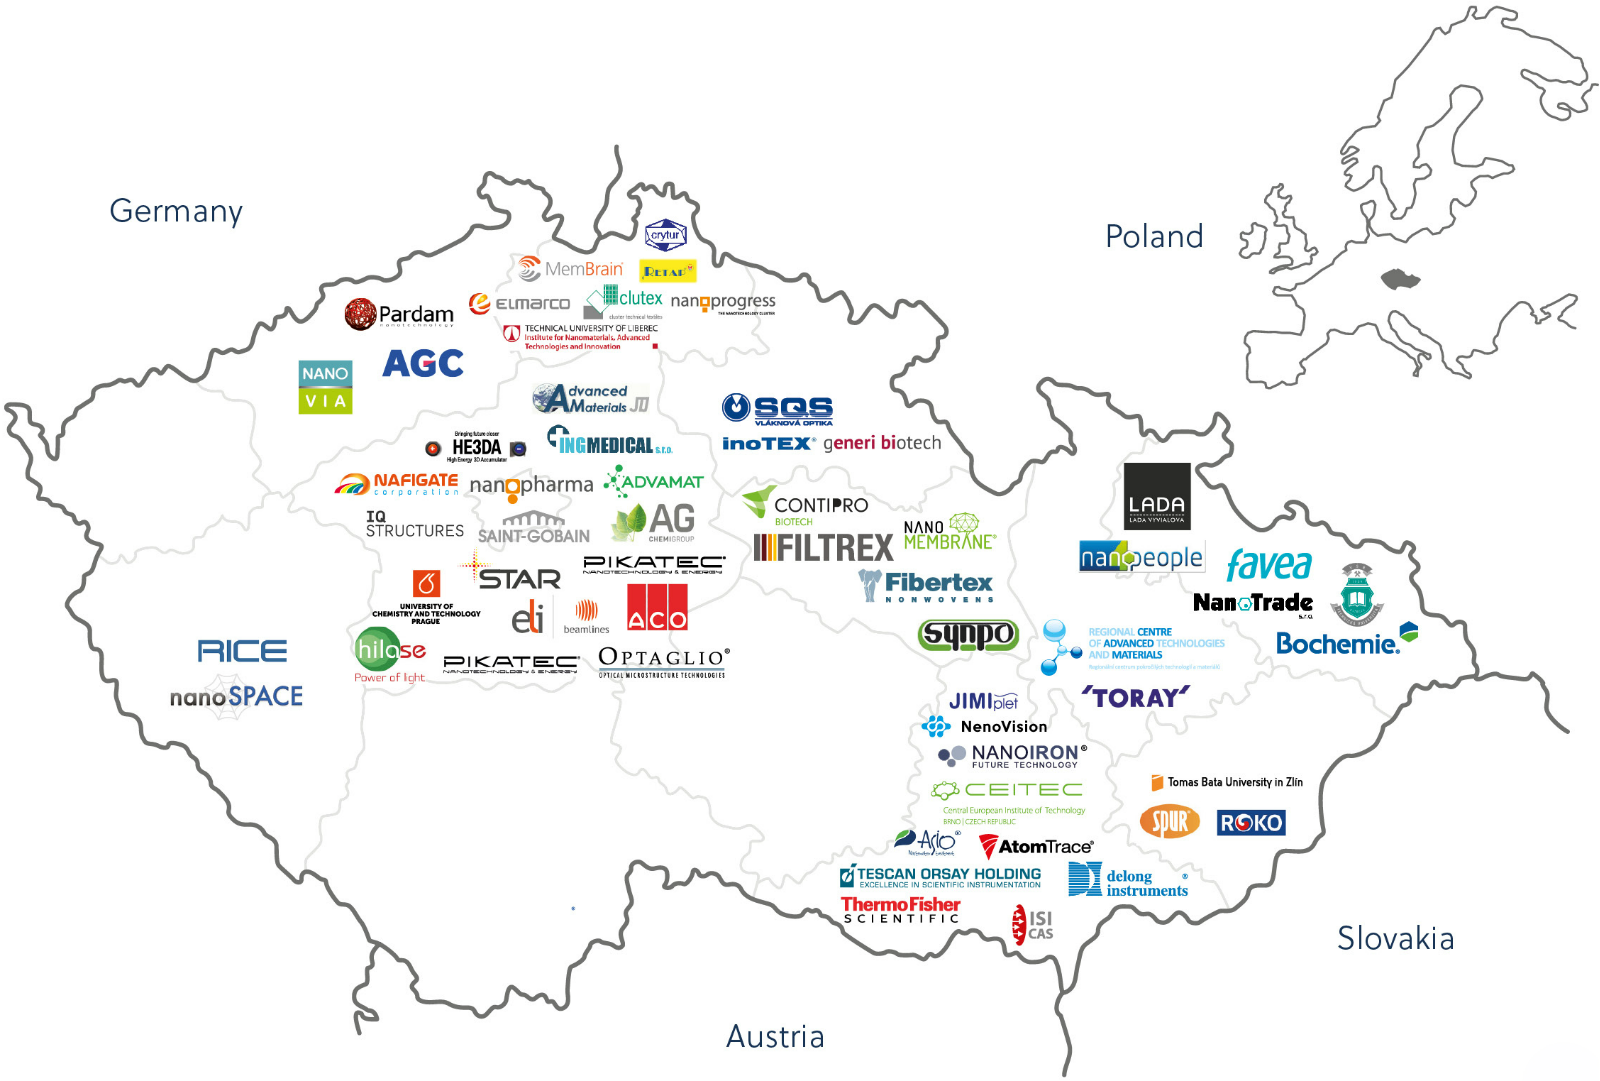 Foreign Investors and Key Players in the Czech Republic